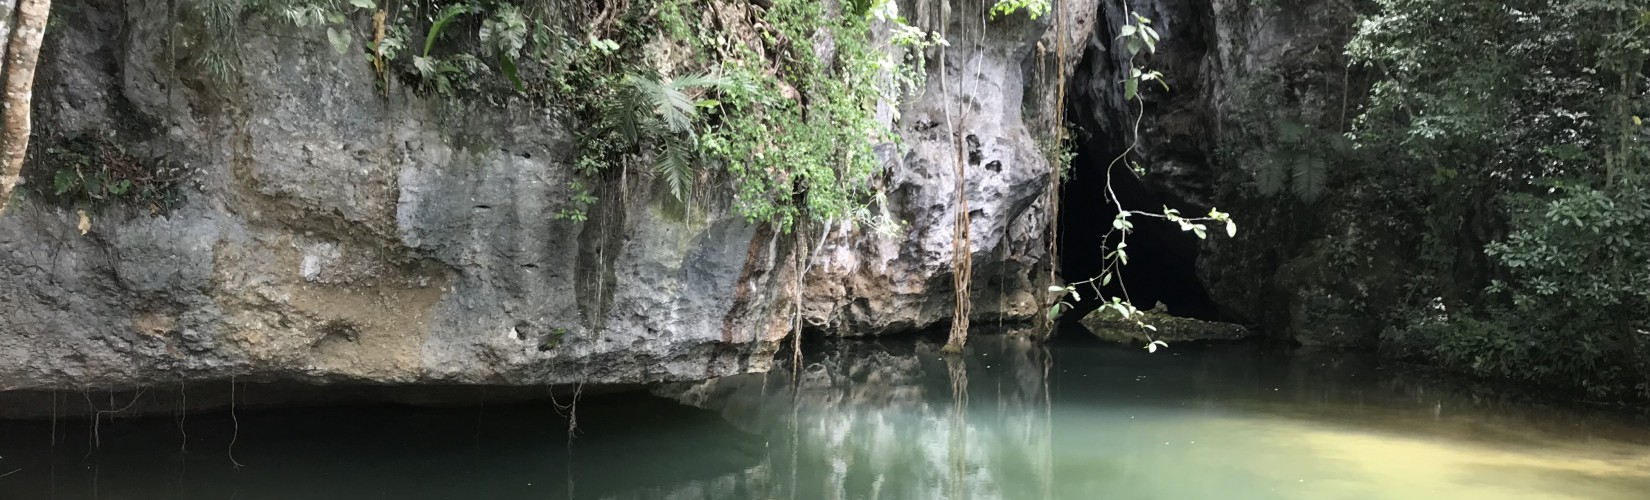 Barton Creek, Cayo Belize